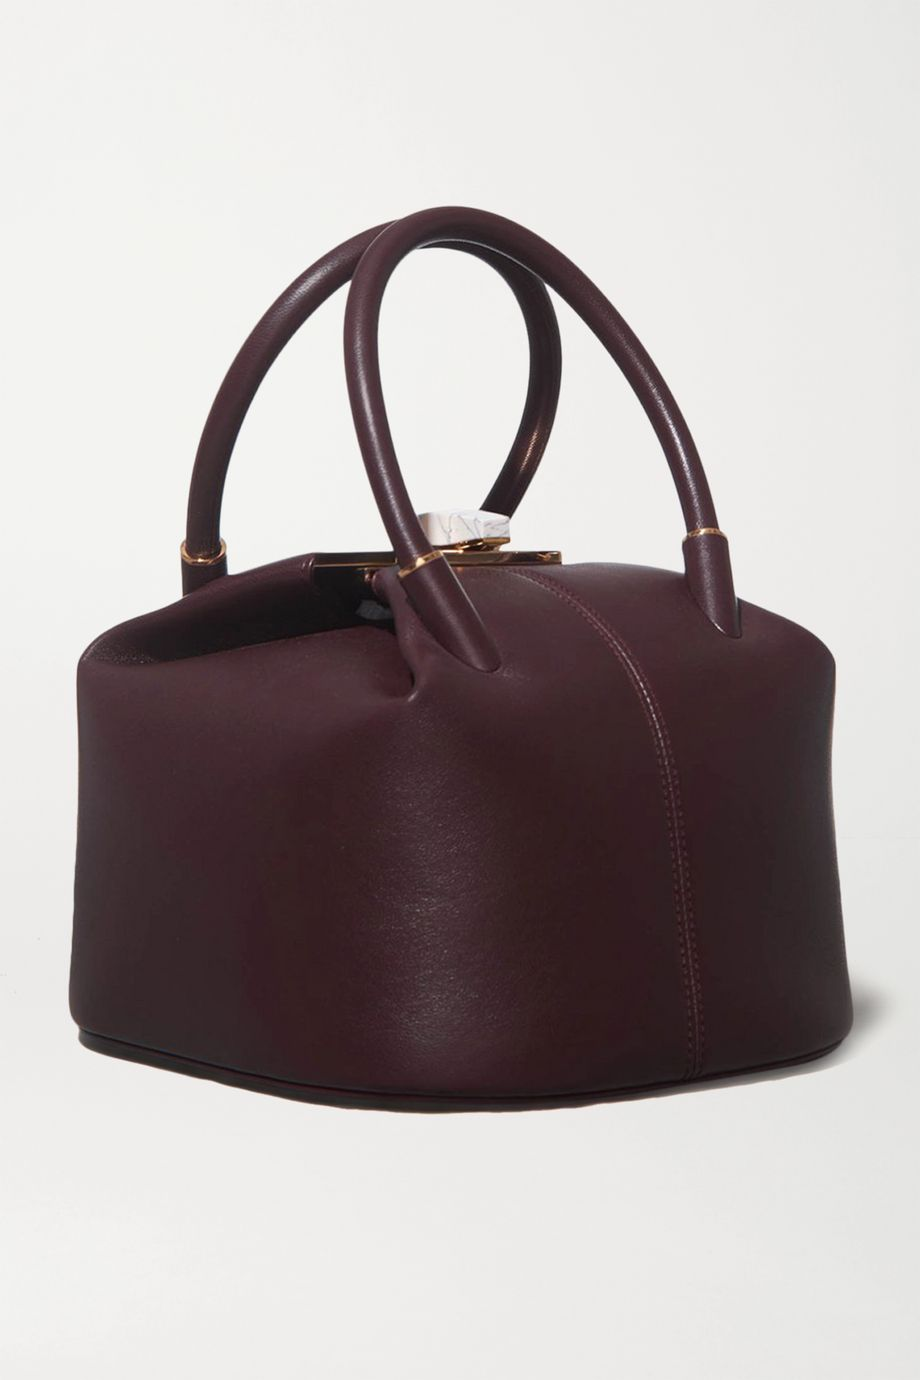 Gabriela Hearst Baez leather tote